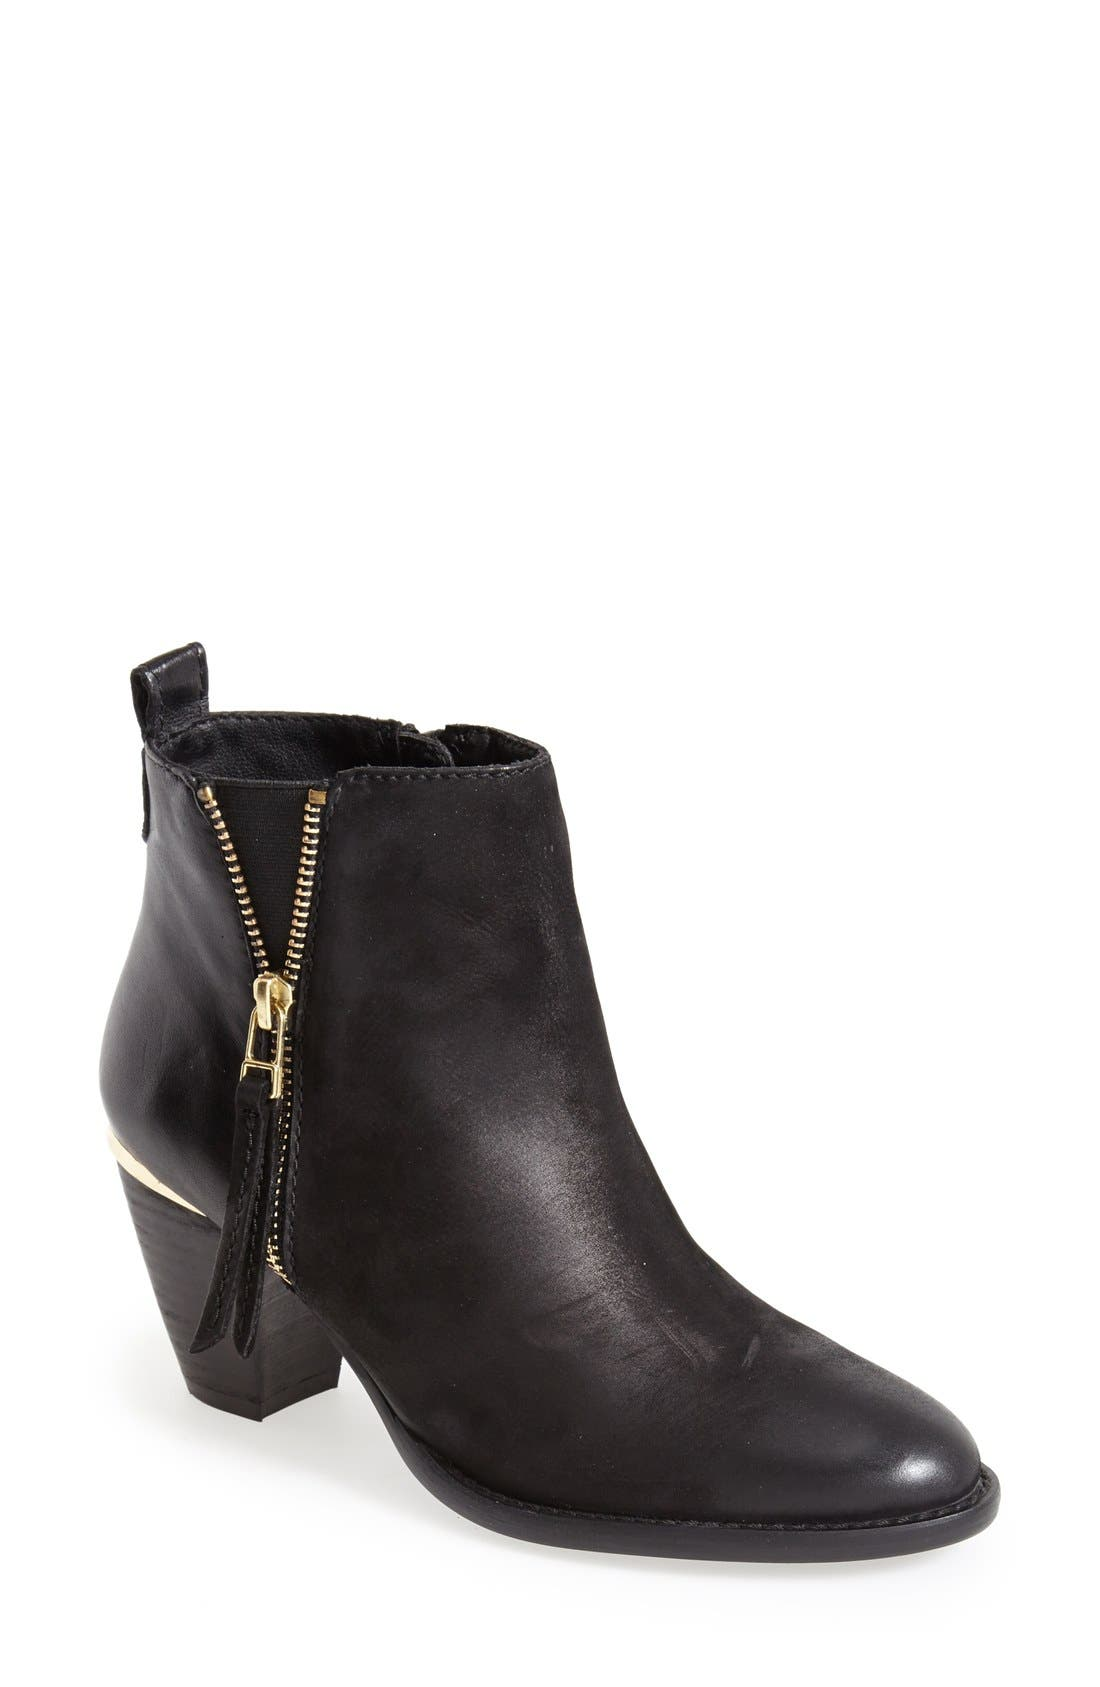 'Wantagh' Leather Ankle Boot,                             Main thumbnail 1, color,                             001